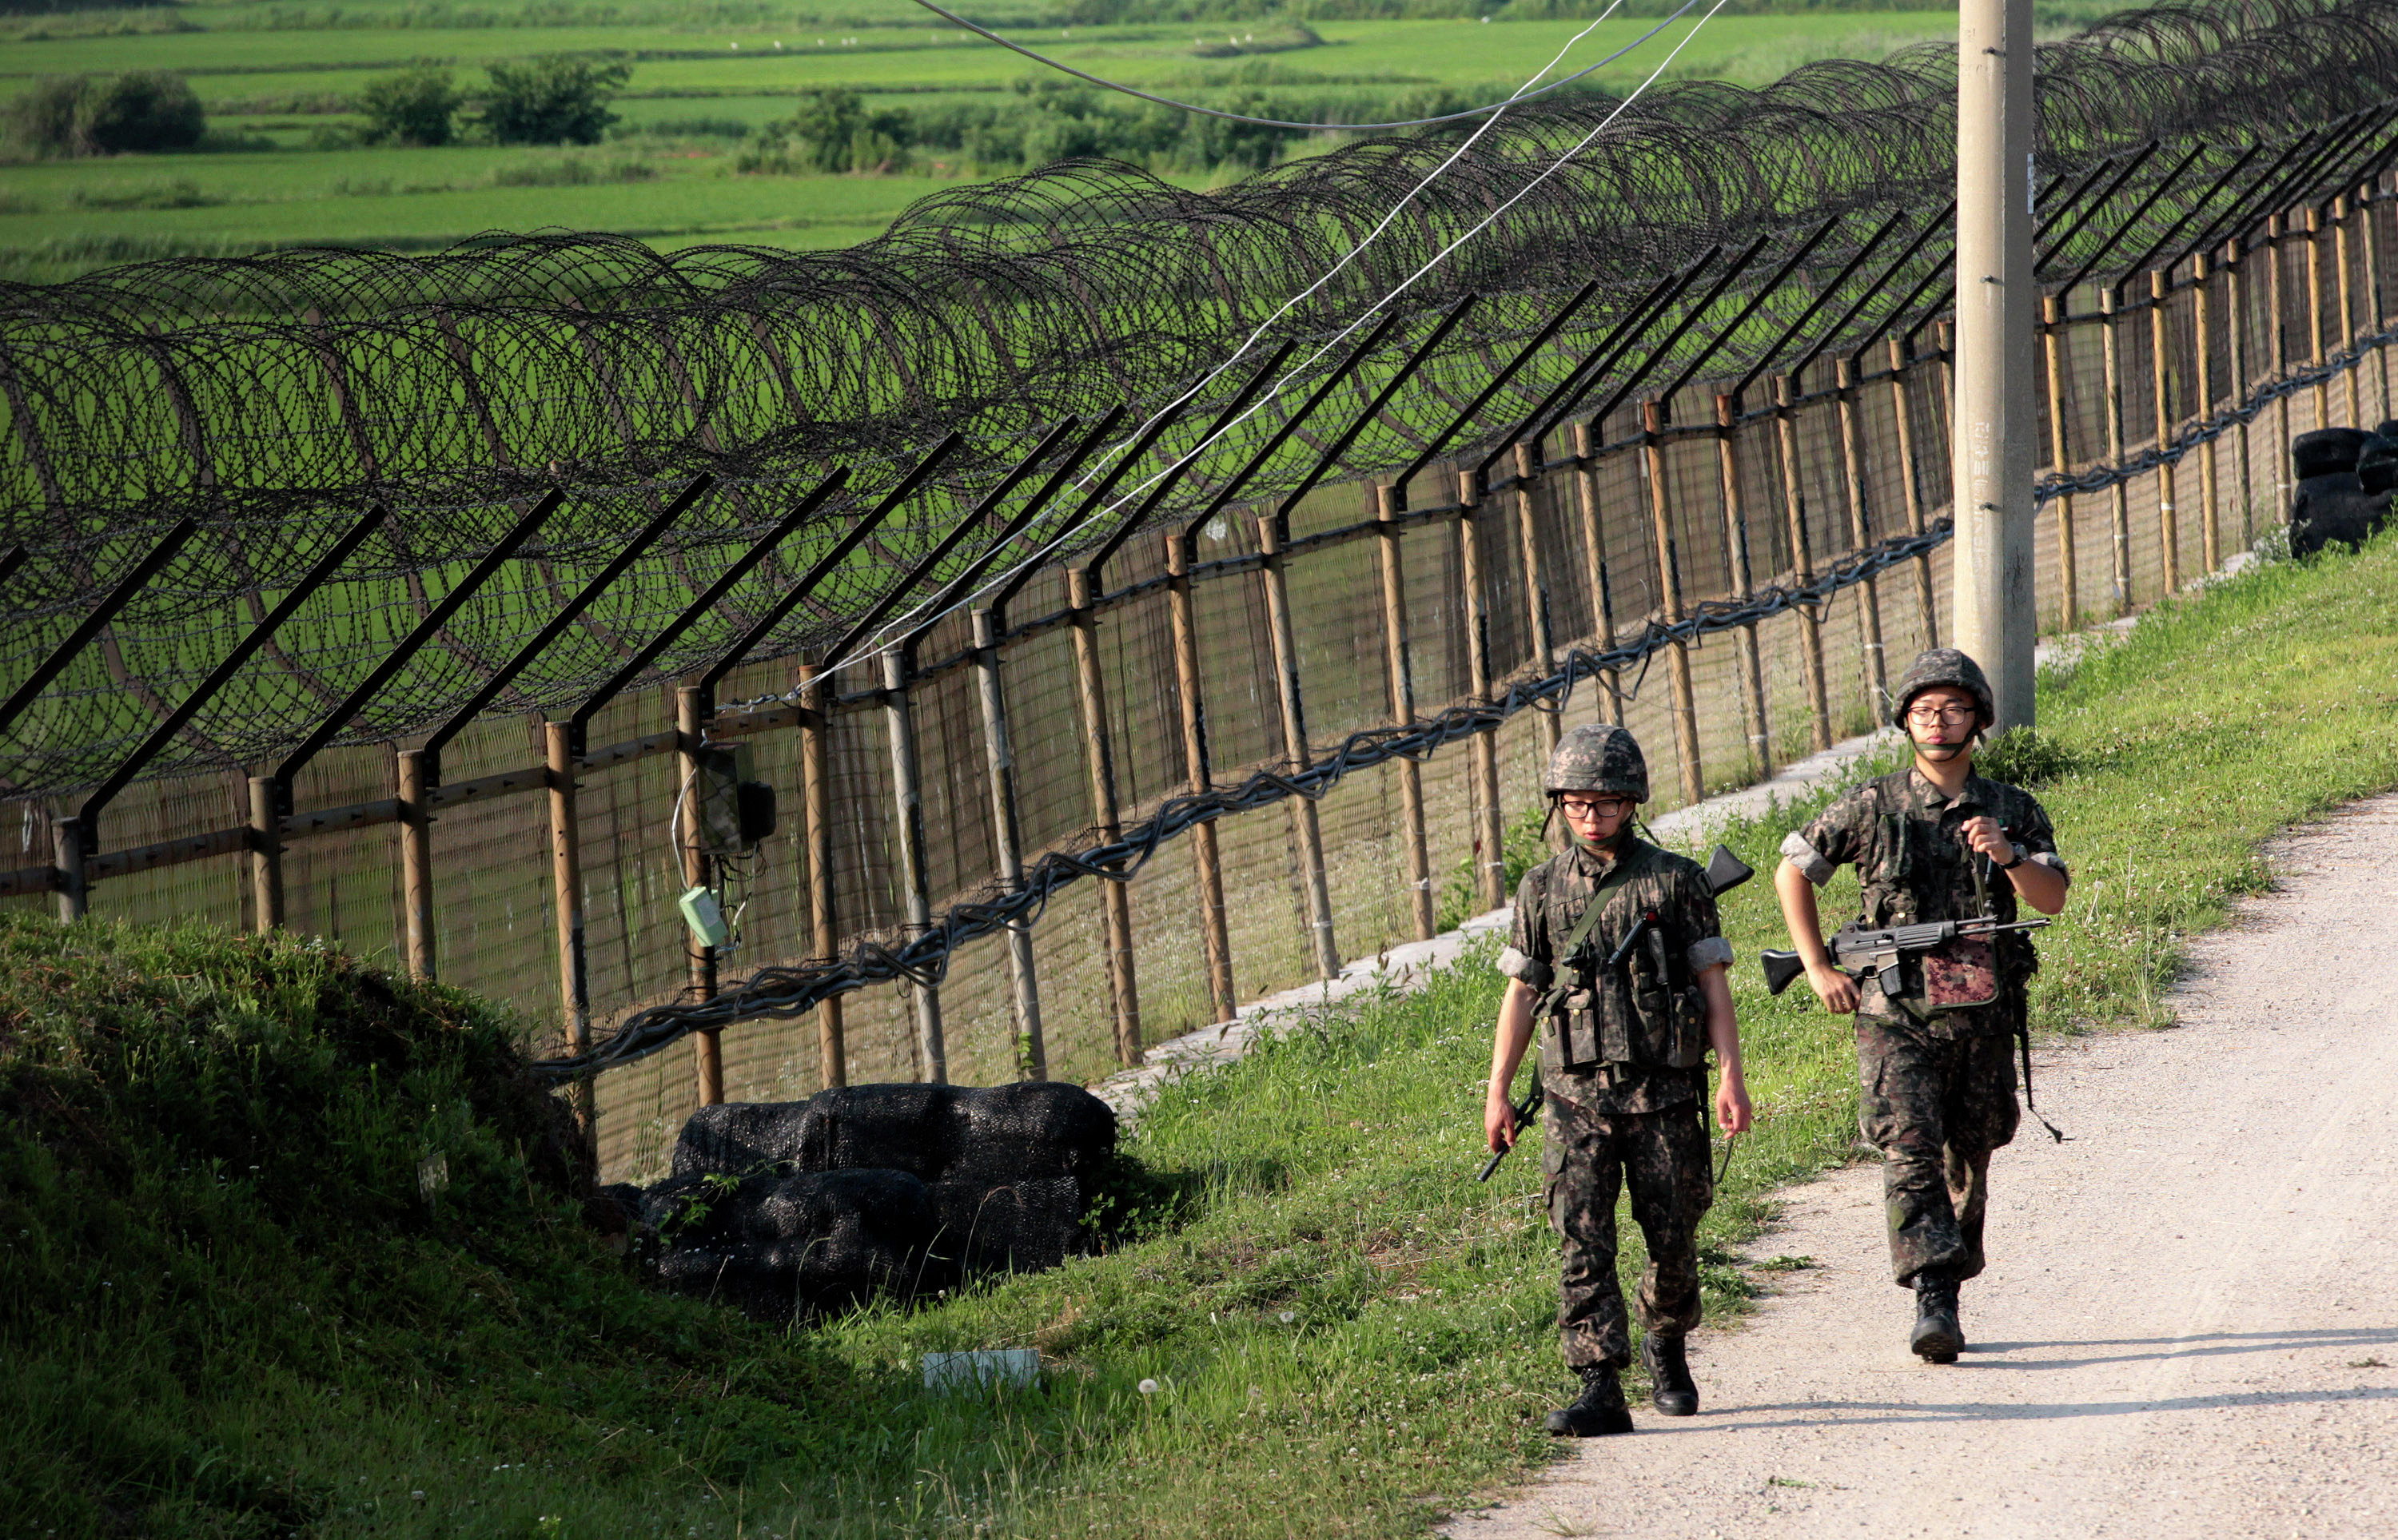 In this June 30, 2014 file photo, South Korean army soldiers patrol through the military wire fence in Paju, near the border with North Korea, South Korea